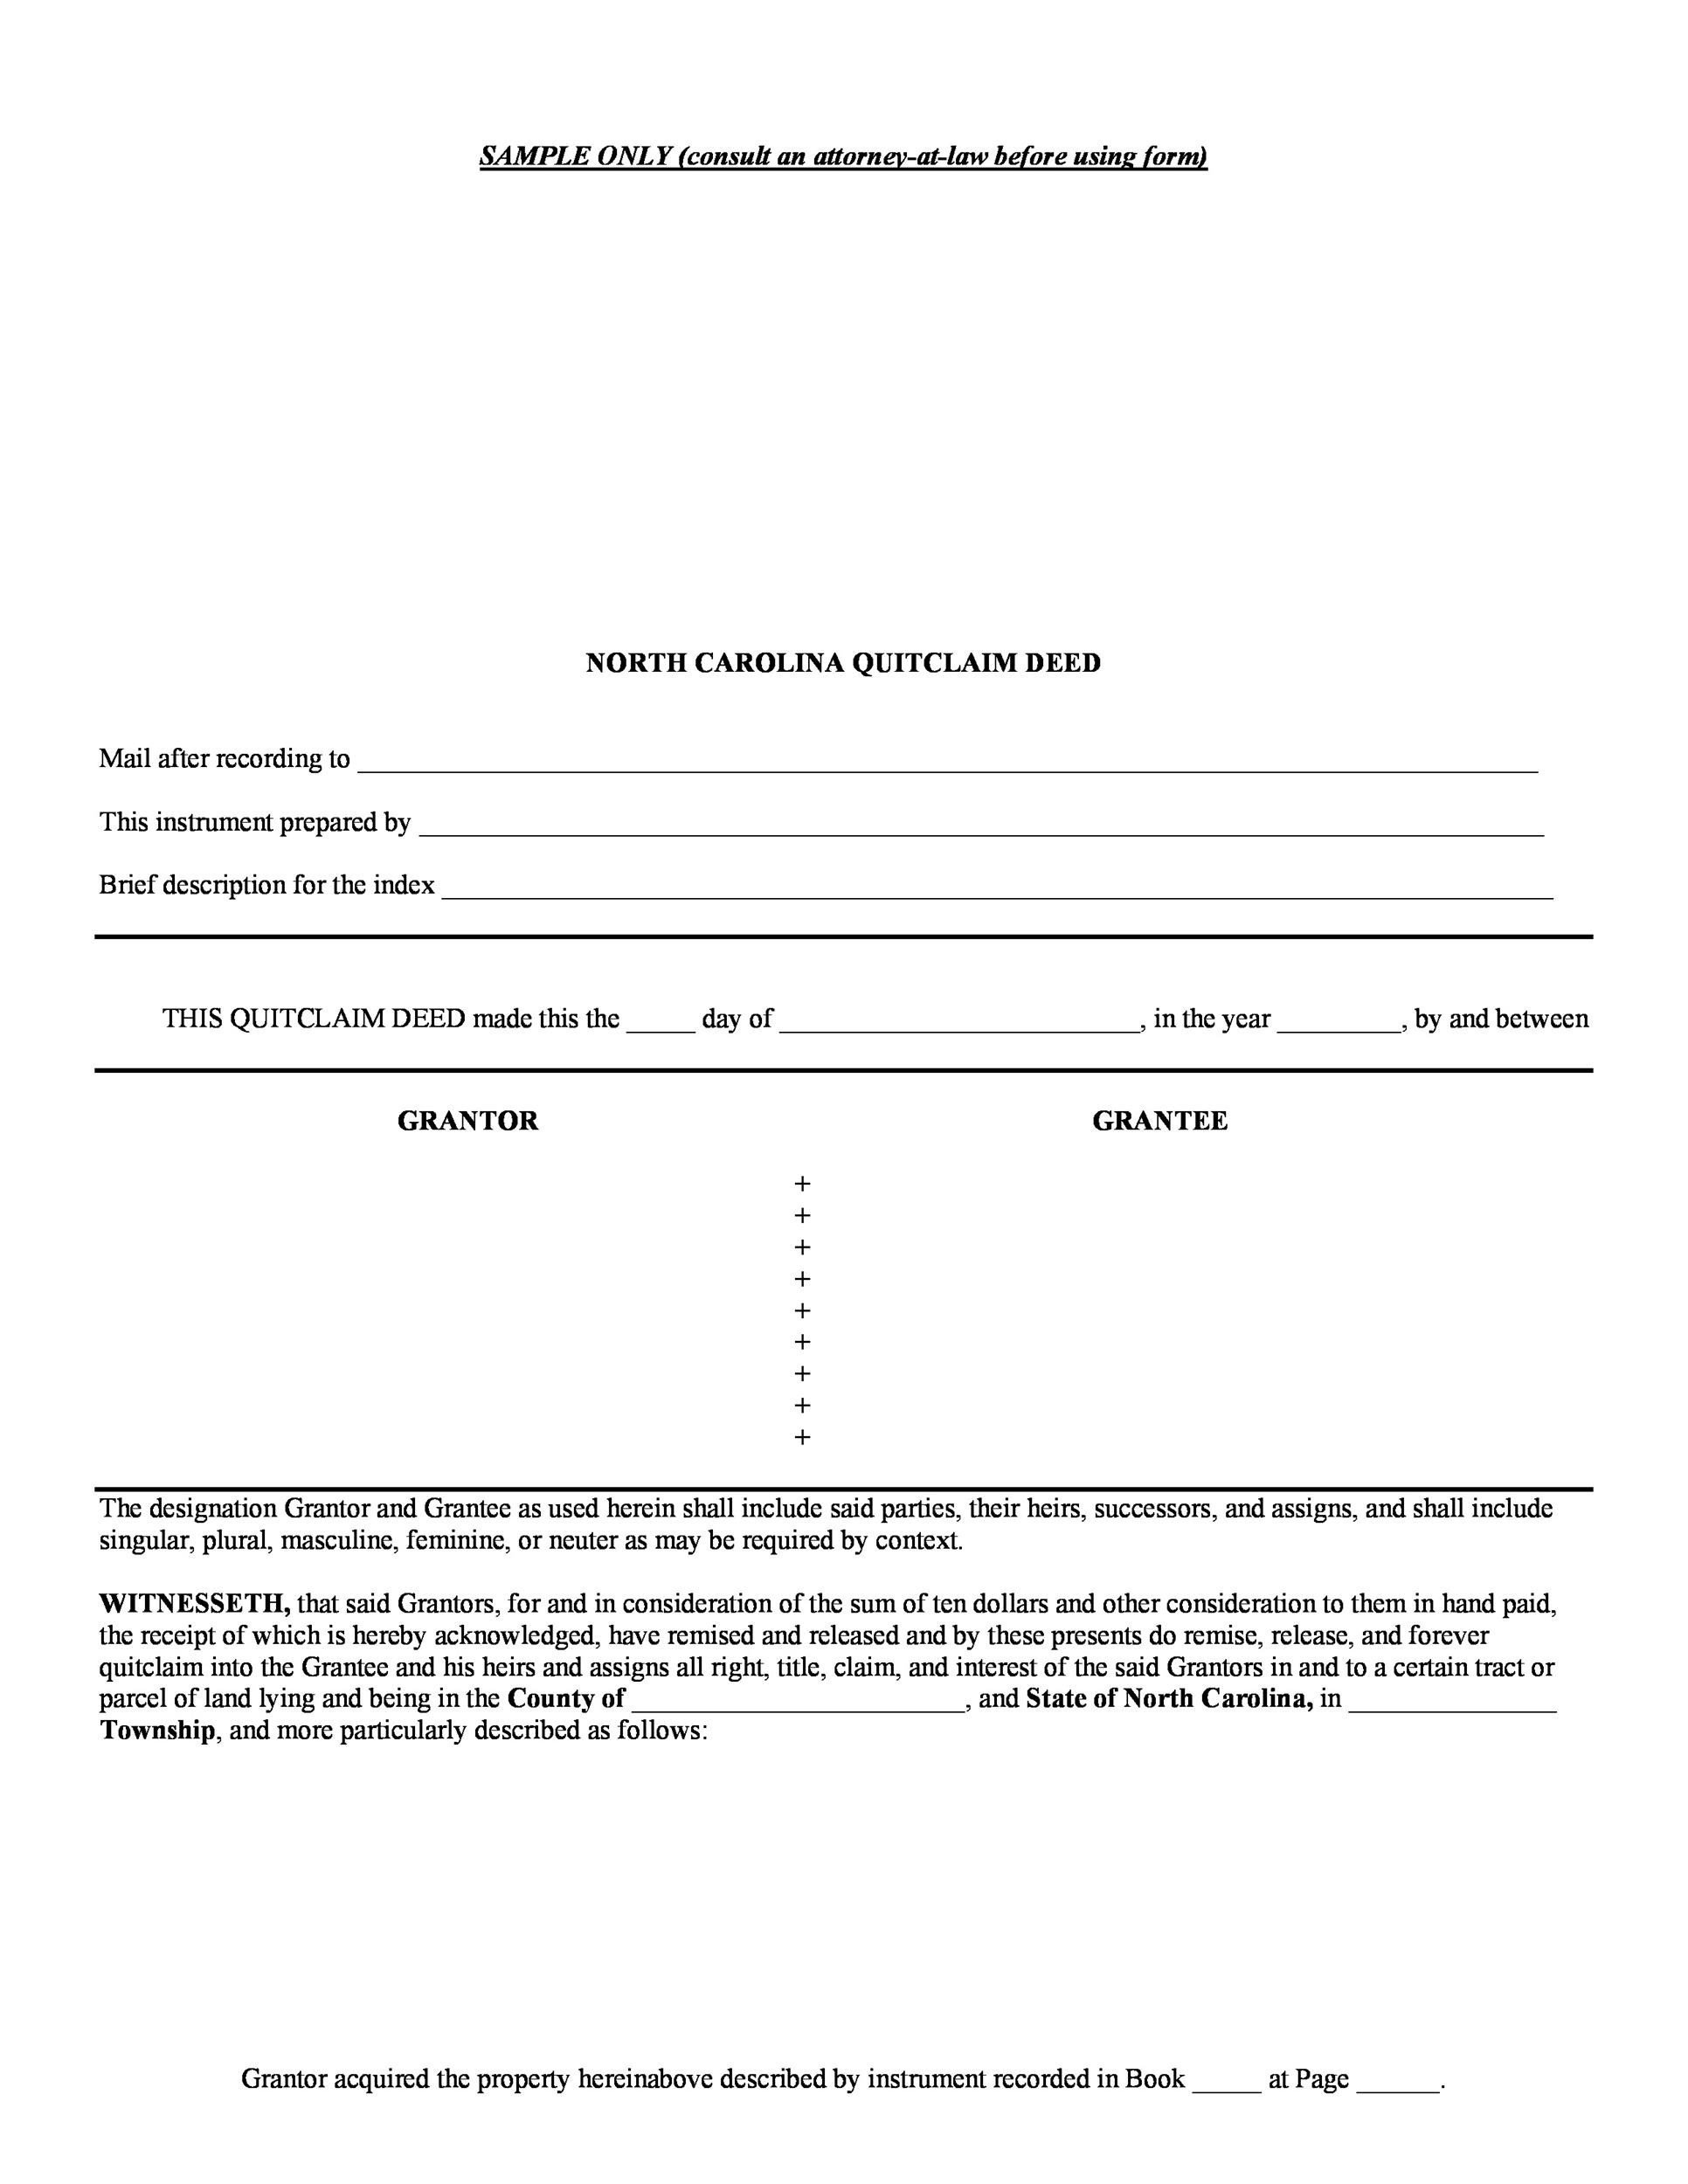 Free Quit Claim Deed Template 21